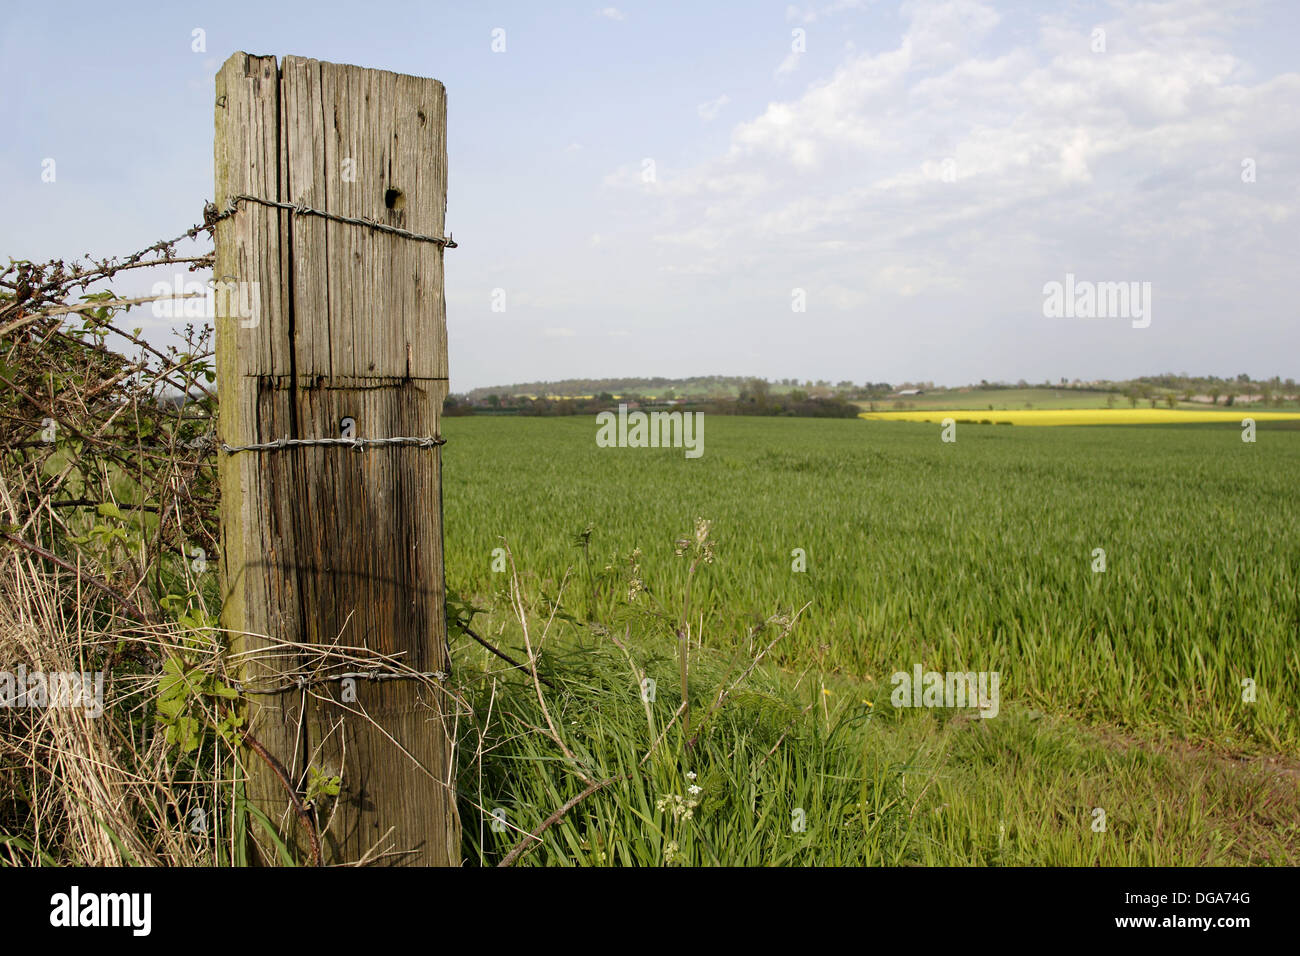 Old wooden fence post in field close up england uk stock photo old wooden fence post in field close up england uk baanklon Image collections